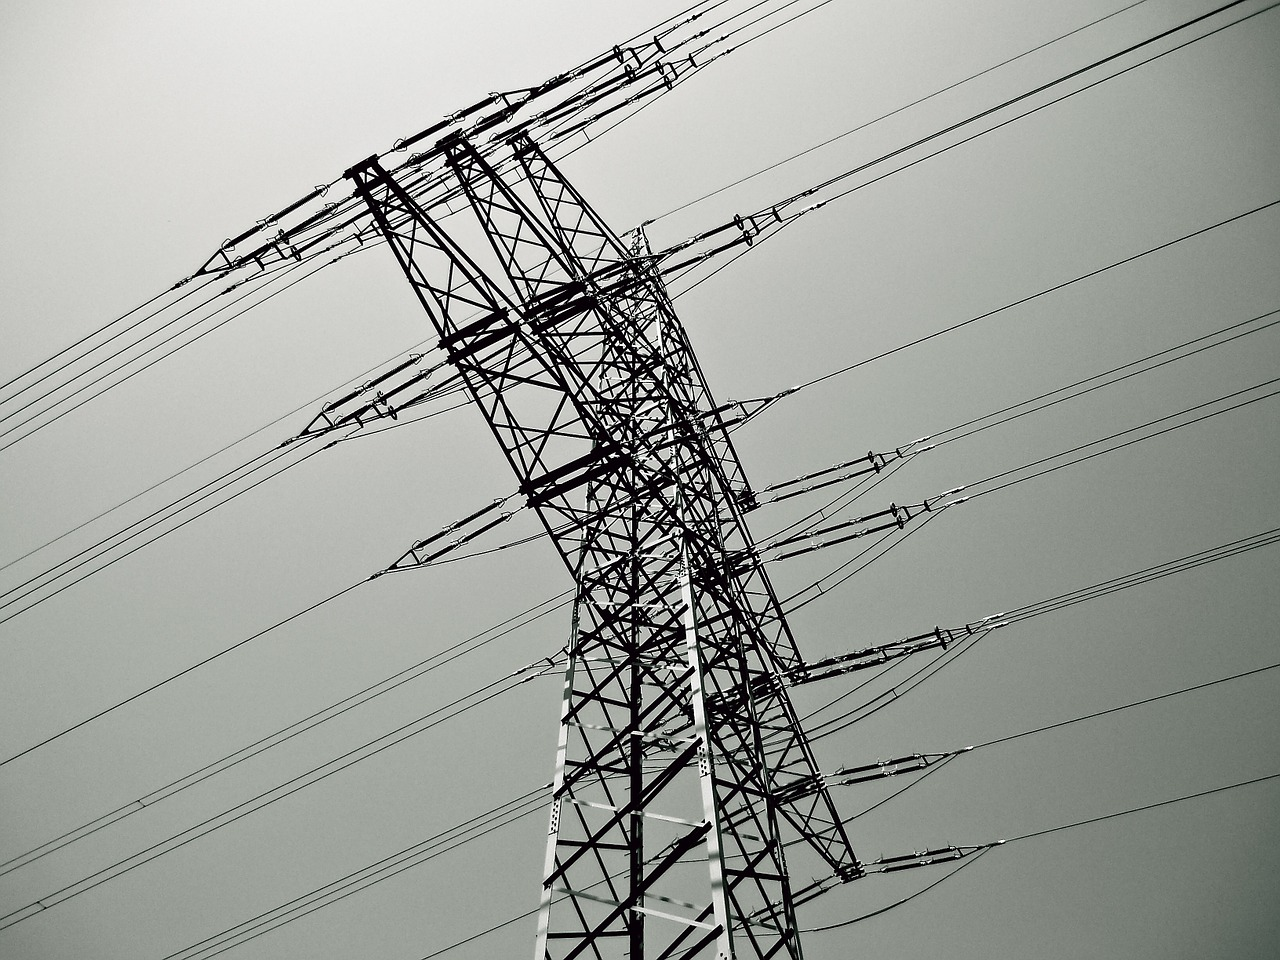 Powerlines suspended by a pylon